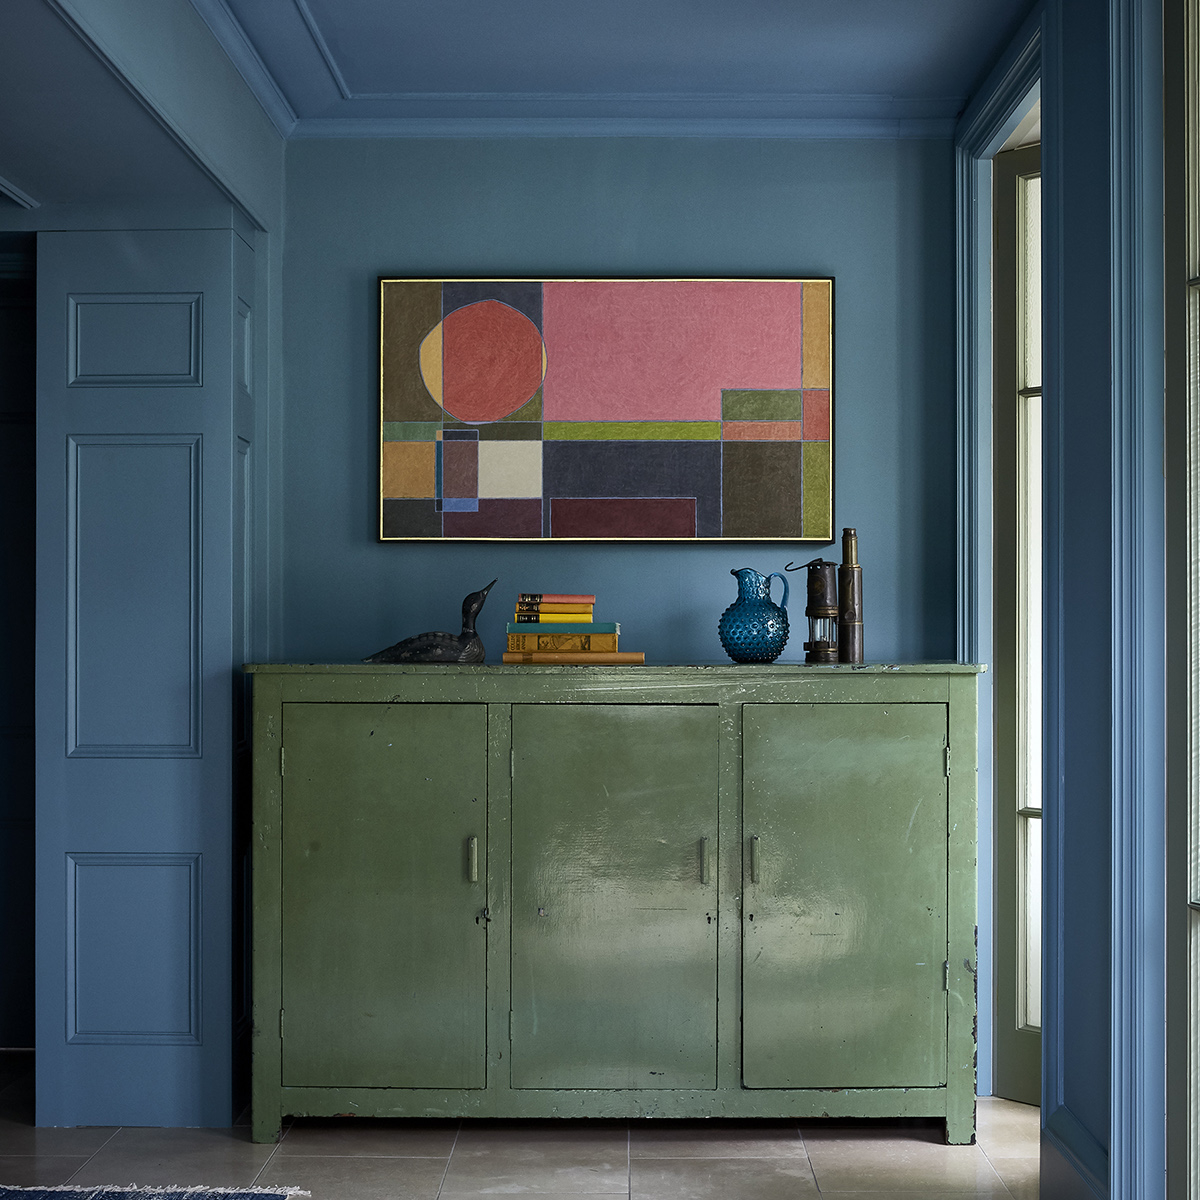 Blue walls and ceiling, high green lacquer sideboard with colourful geometric artwork. Design by Nicola Harding